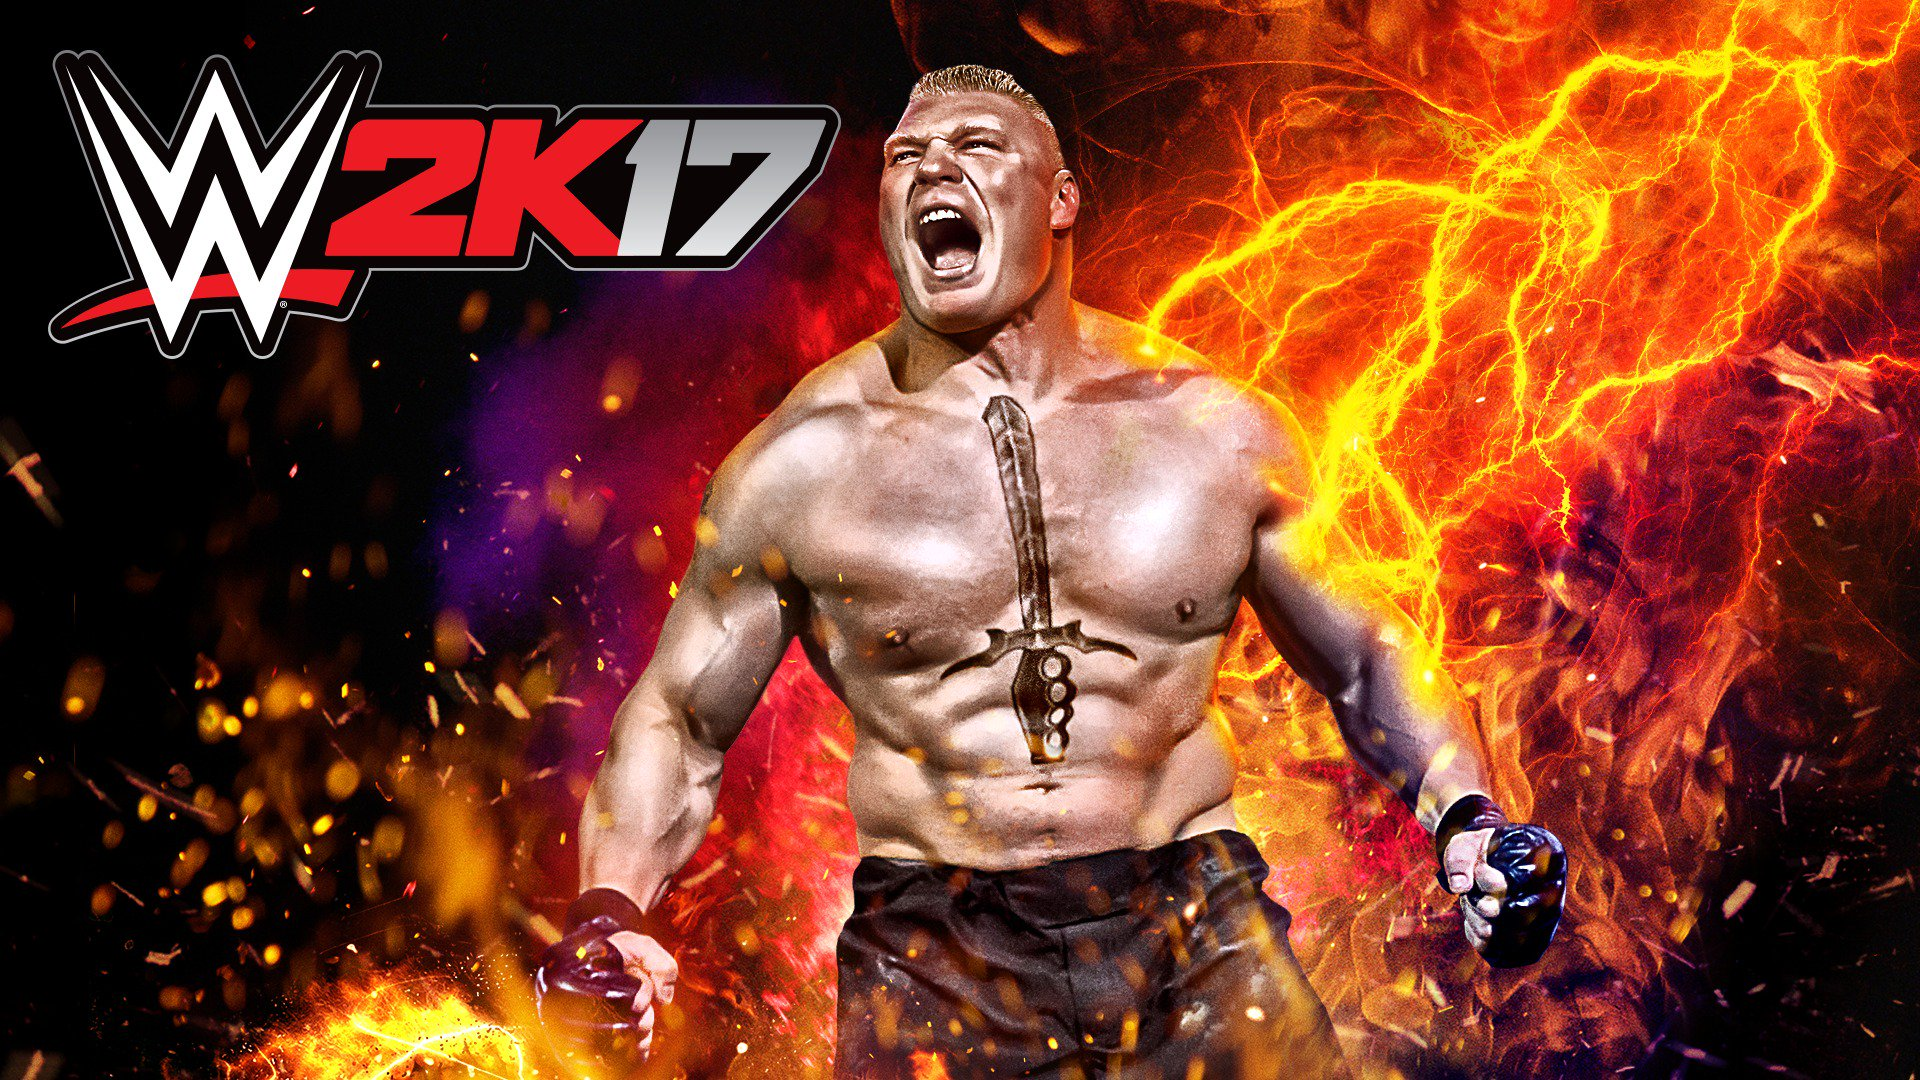 Brock Lesnars Big Year Continues As Hes Featured On The WWE 2K17 Cover